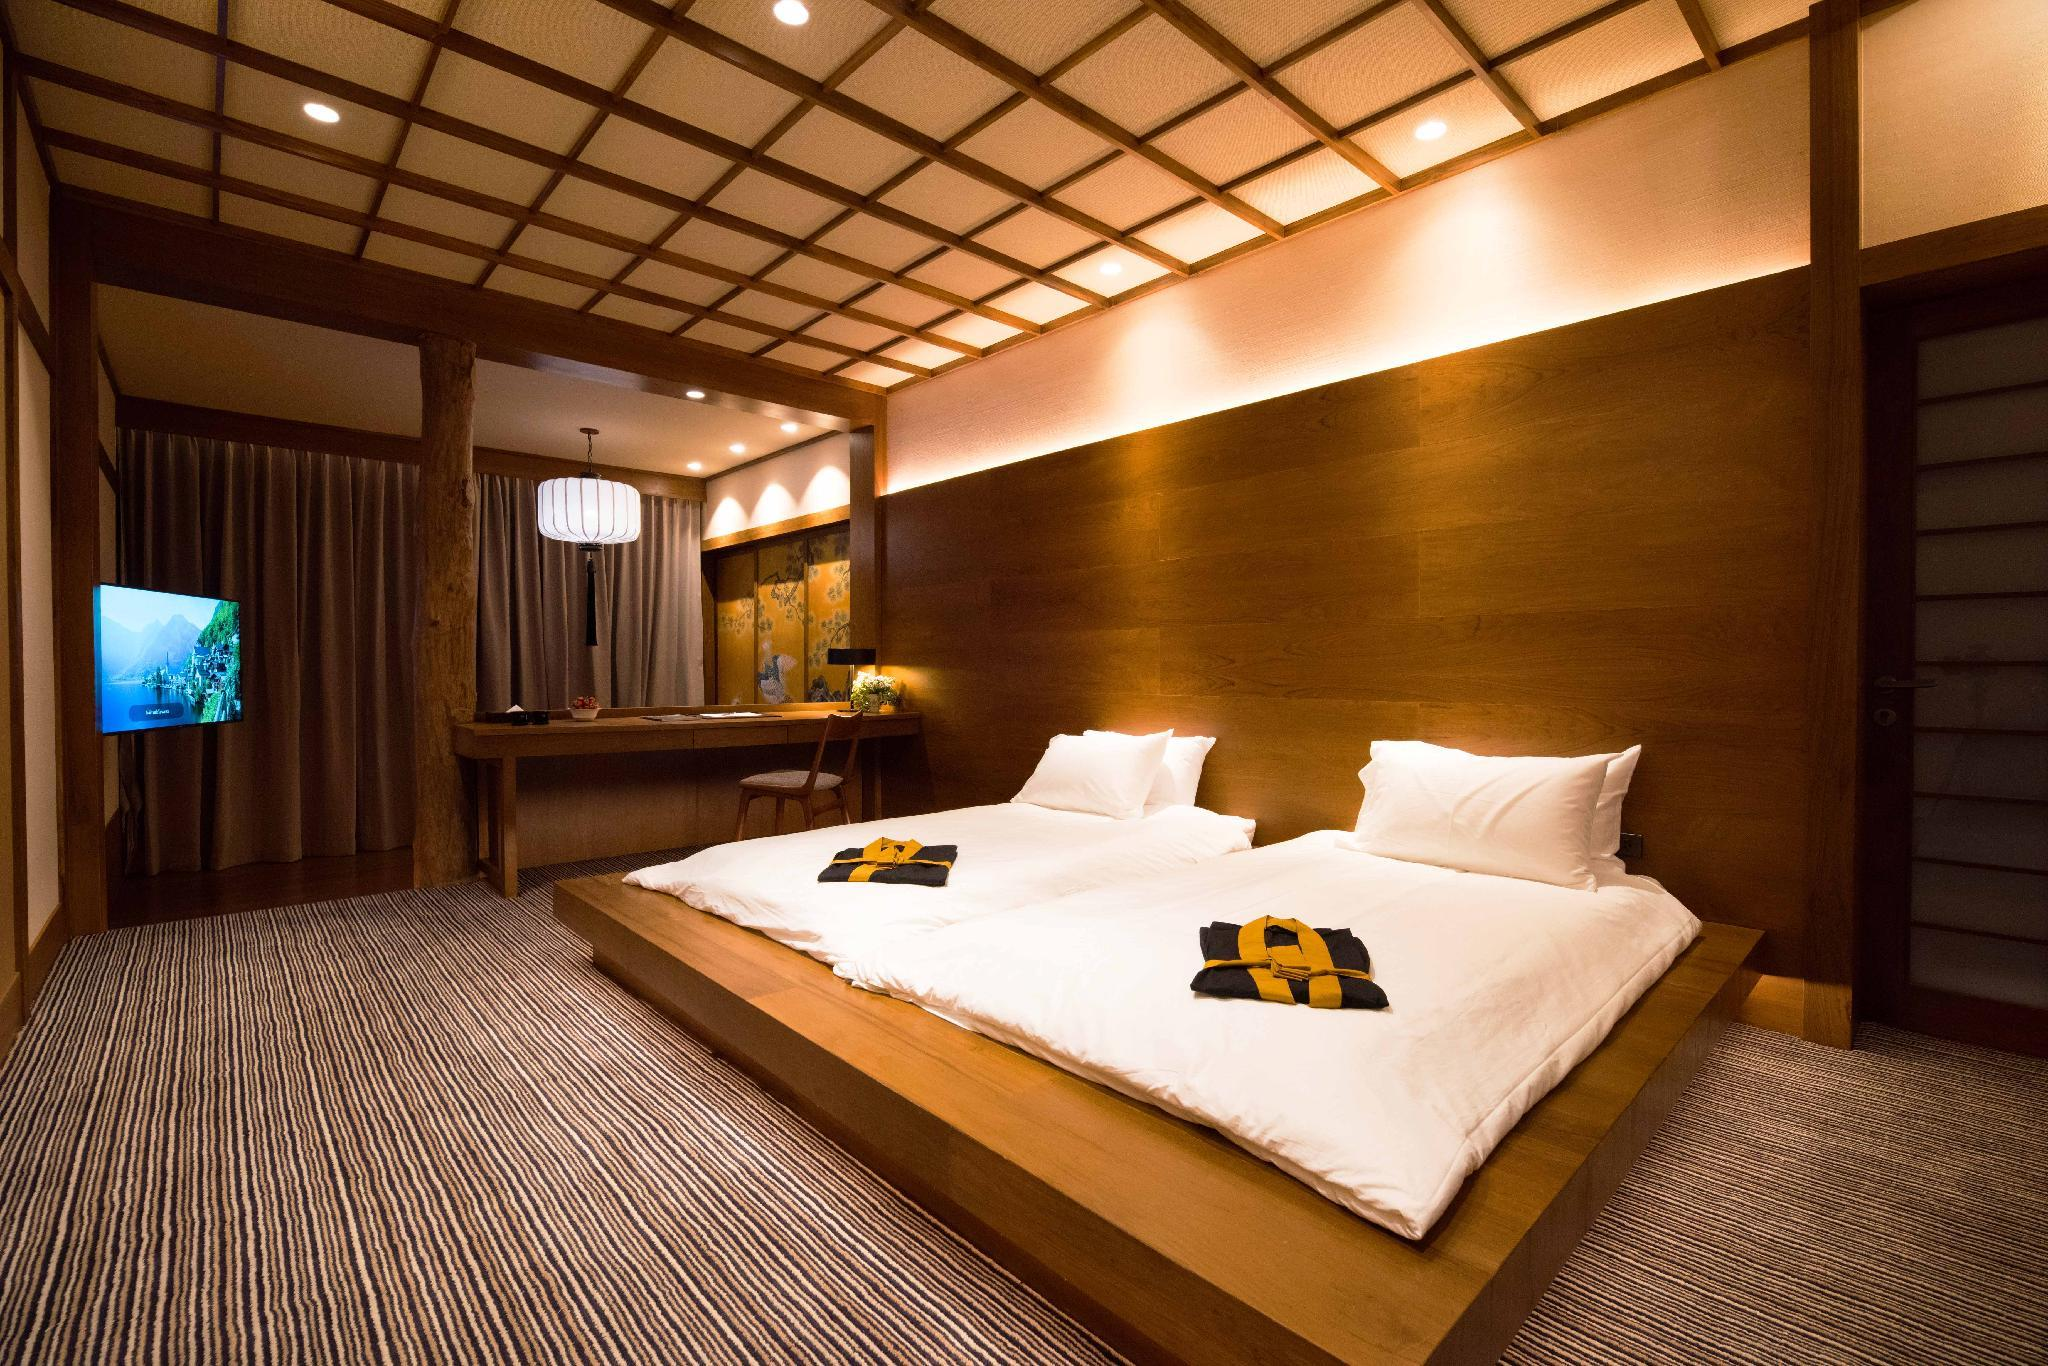 3-Bedroom Imperial Suite with Private Onsen